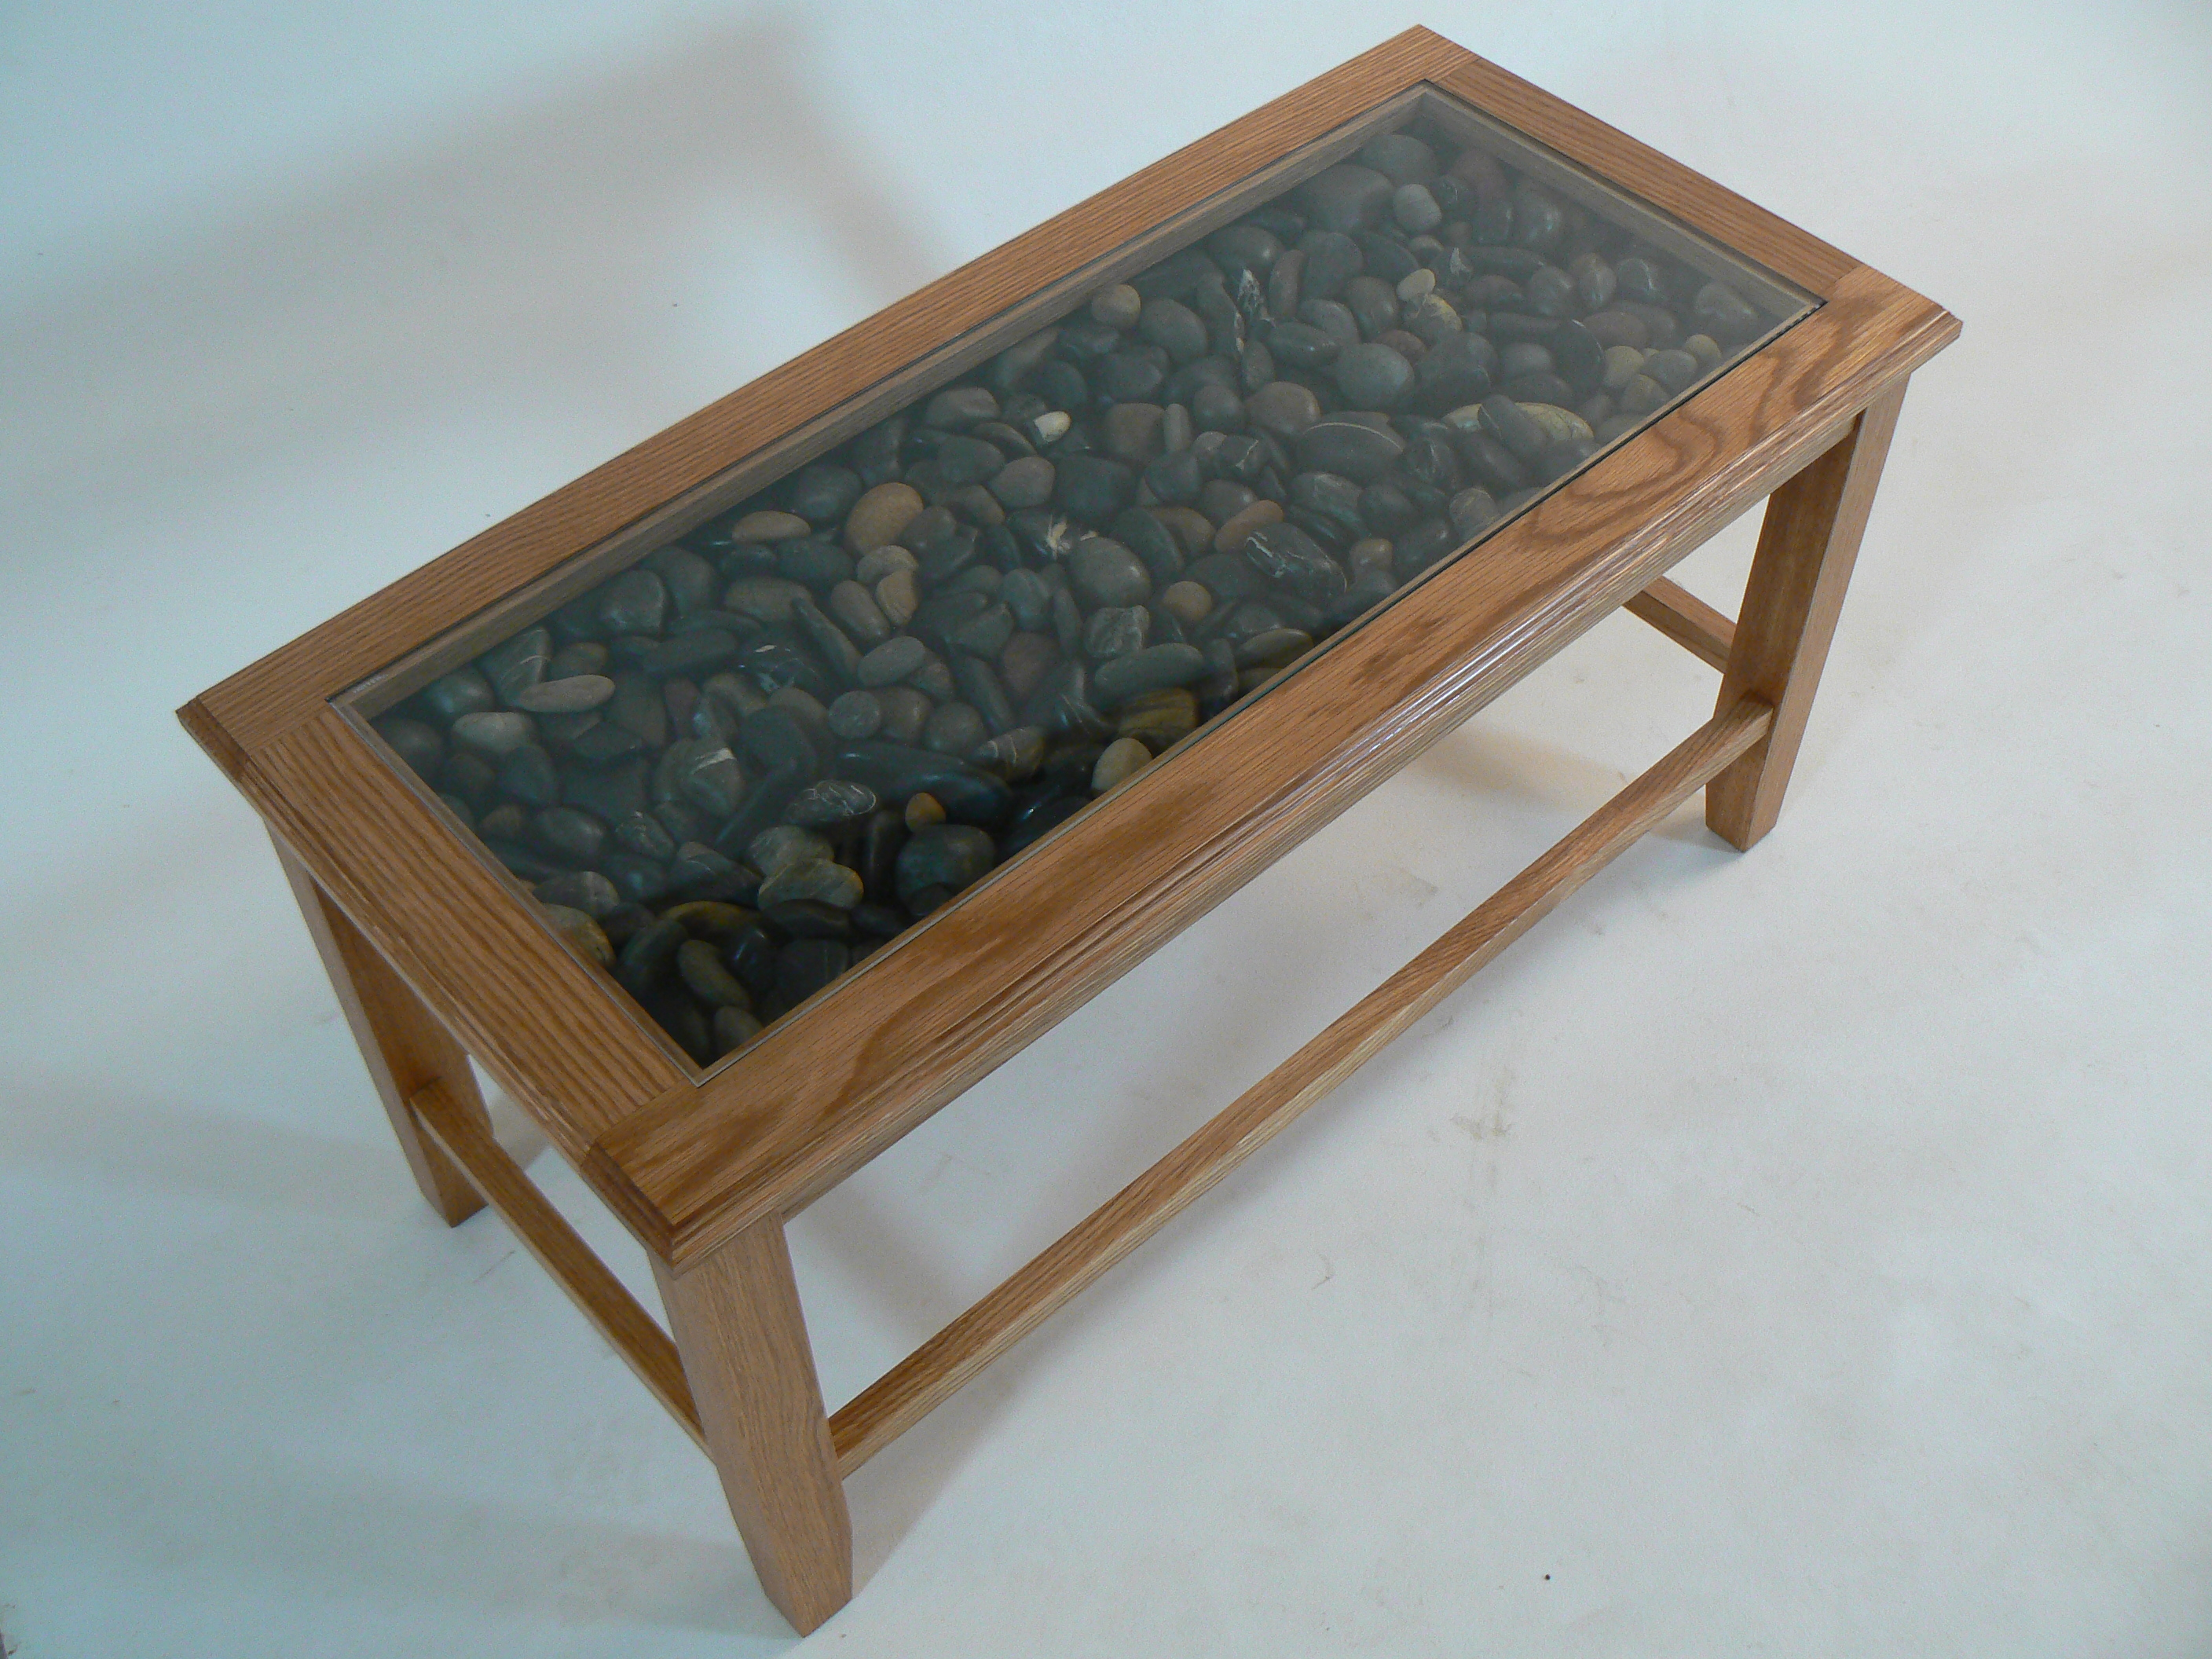 Custom Glass Coffee Tables Coffees Table Display Lift Top Glass Japanese Or Hawaiian Or Any Style (Image 3 of 10)